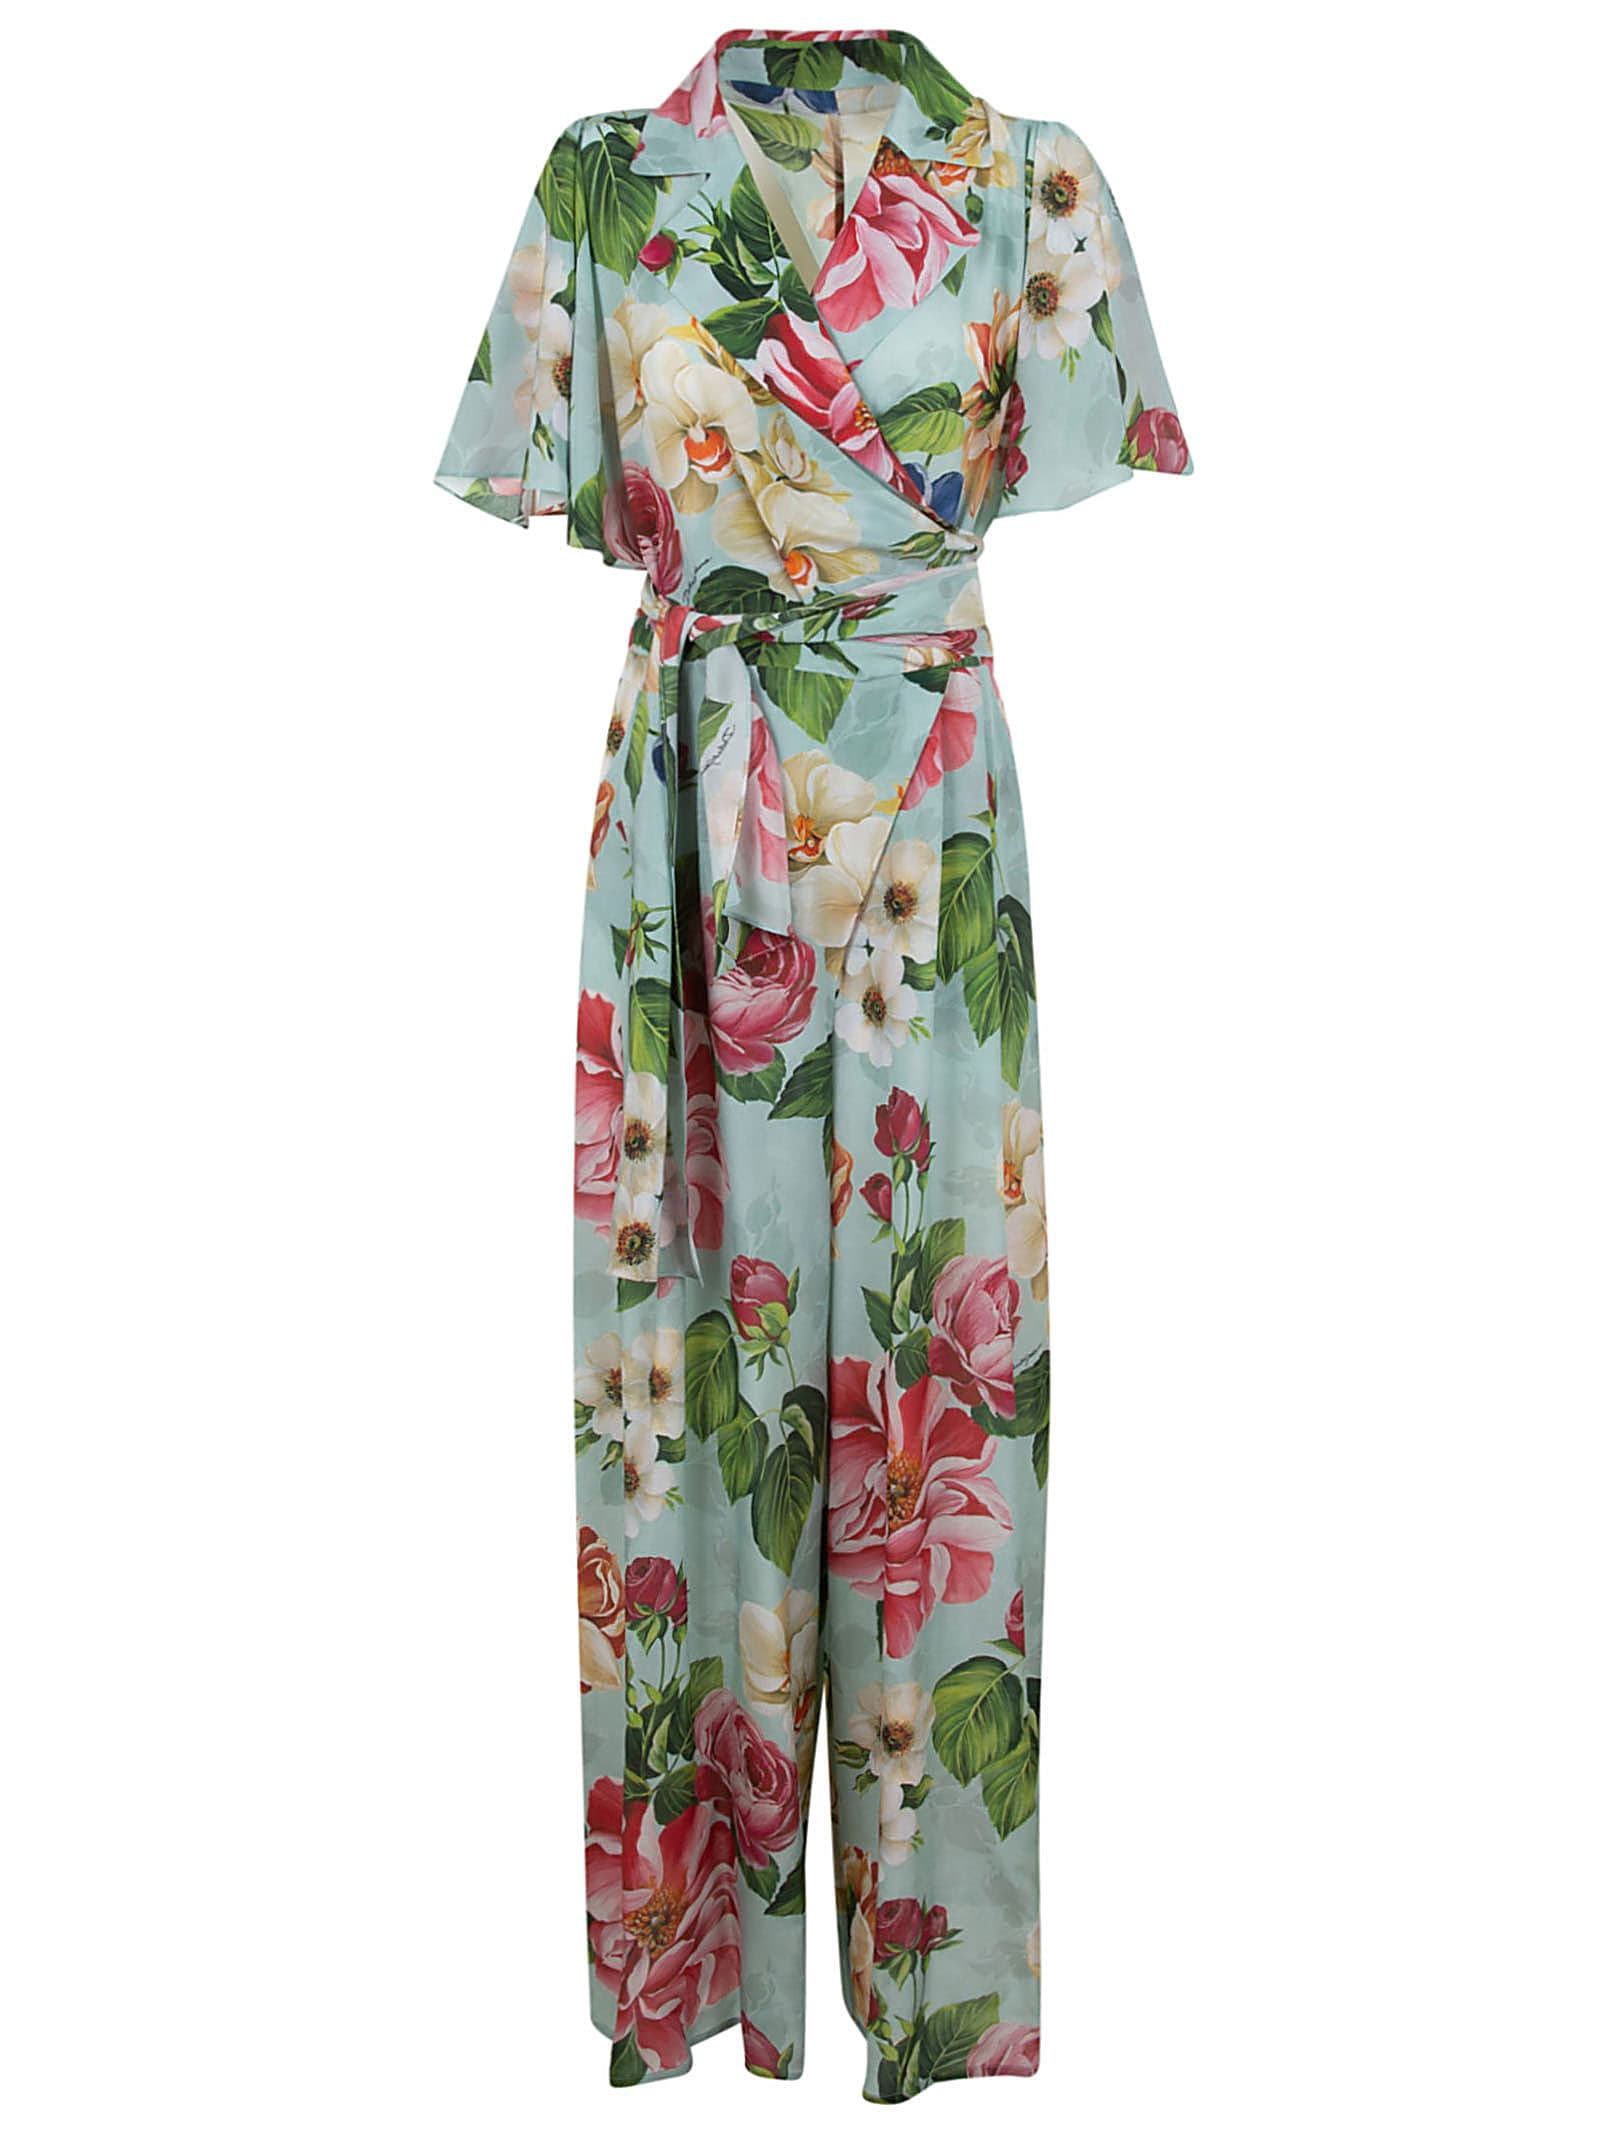 Buy Dolce & Gabbana Floral Print Belted Dress online, shop Dolce & Gabbana with free shipping